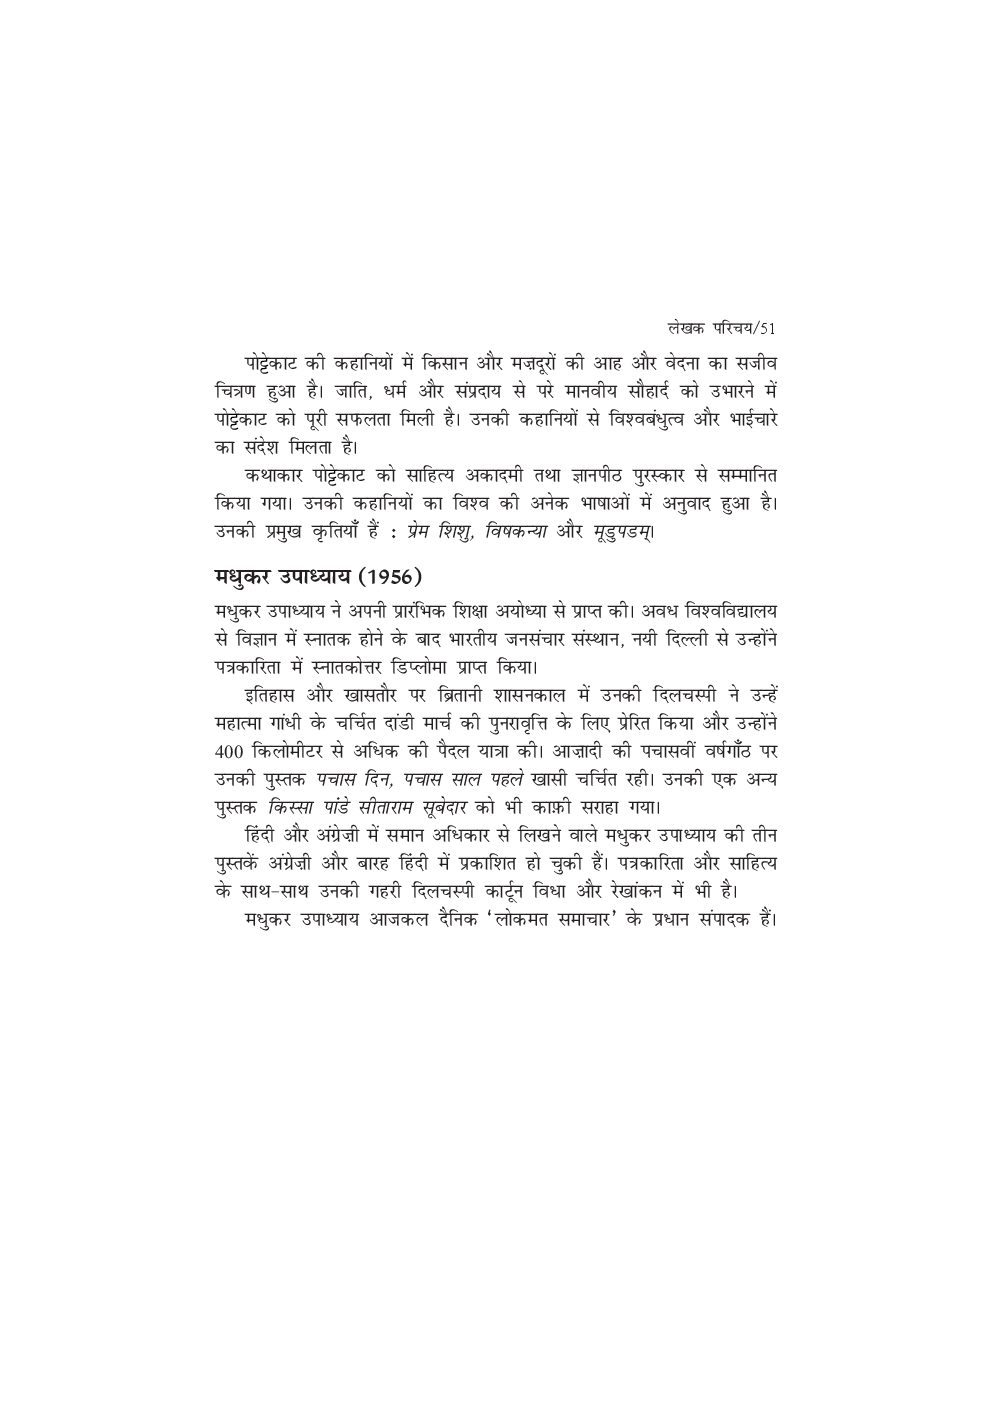 NCERT Hindi Sanchyan Textbook for Class 9th - Page 5